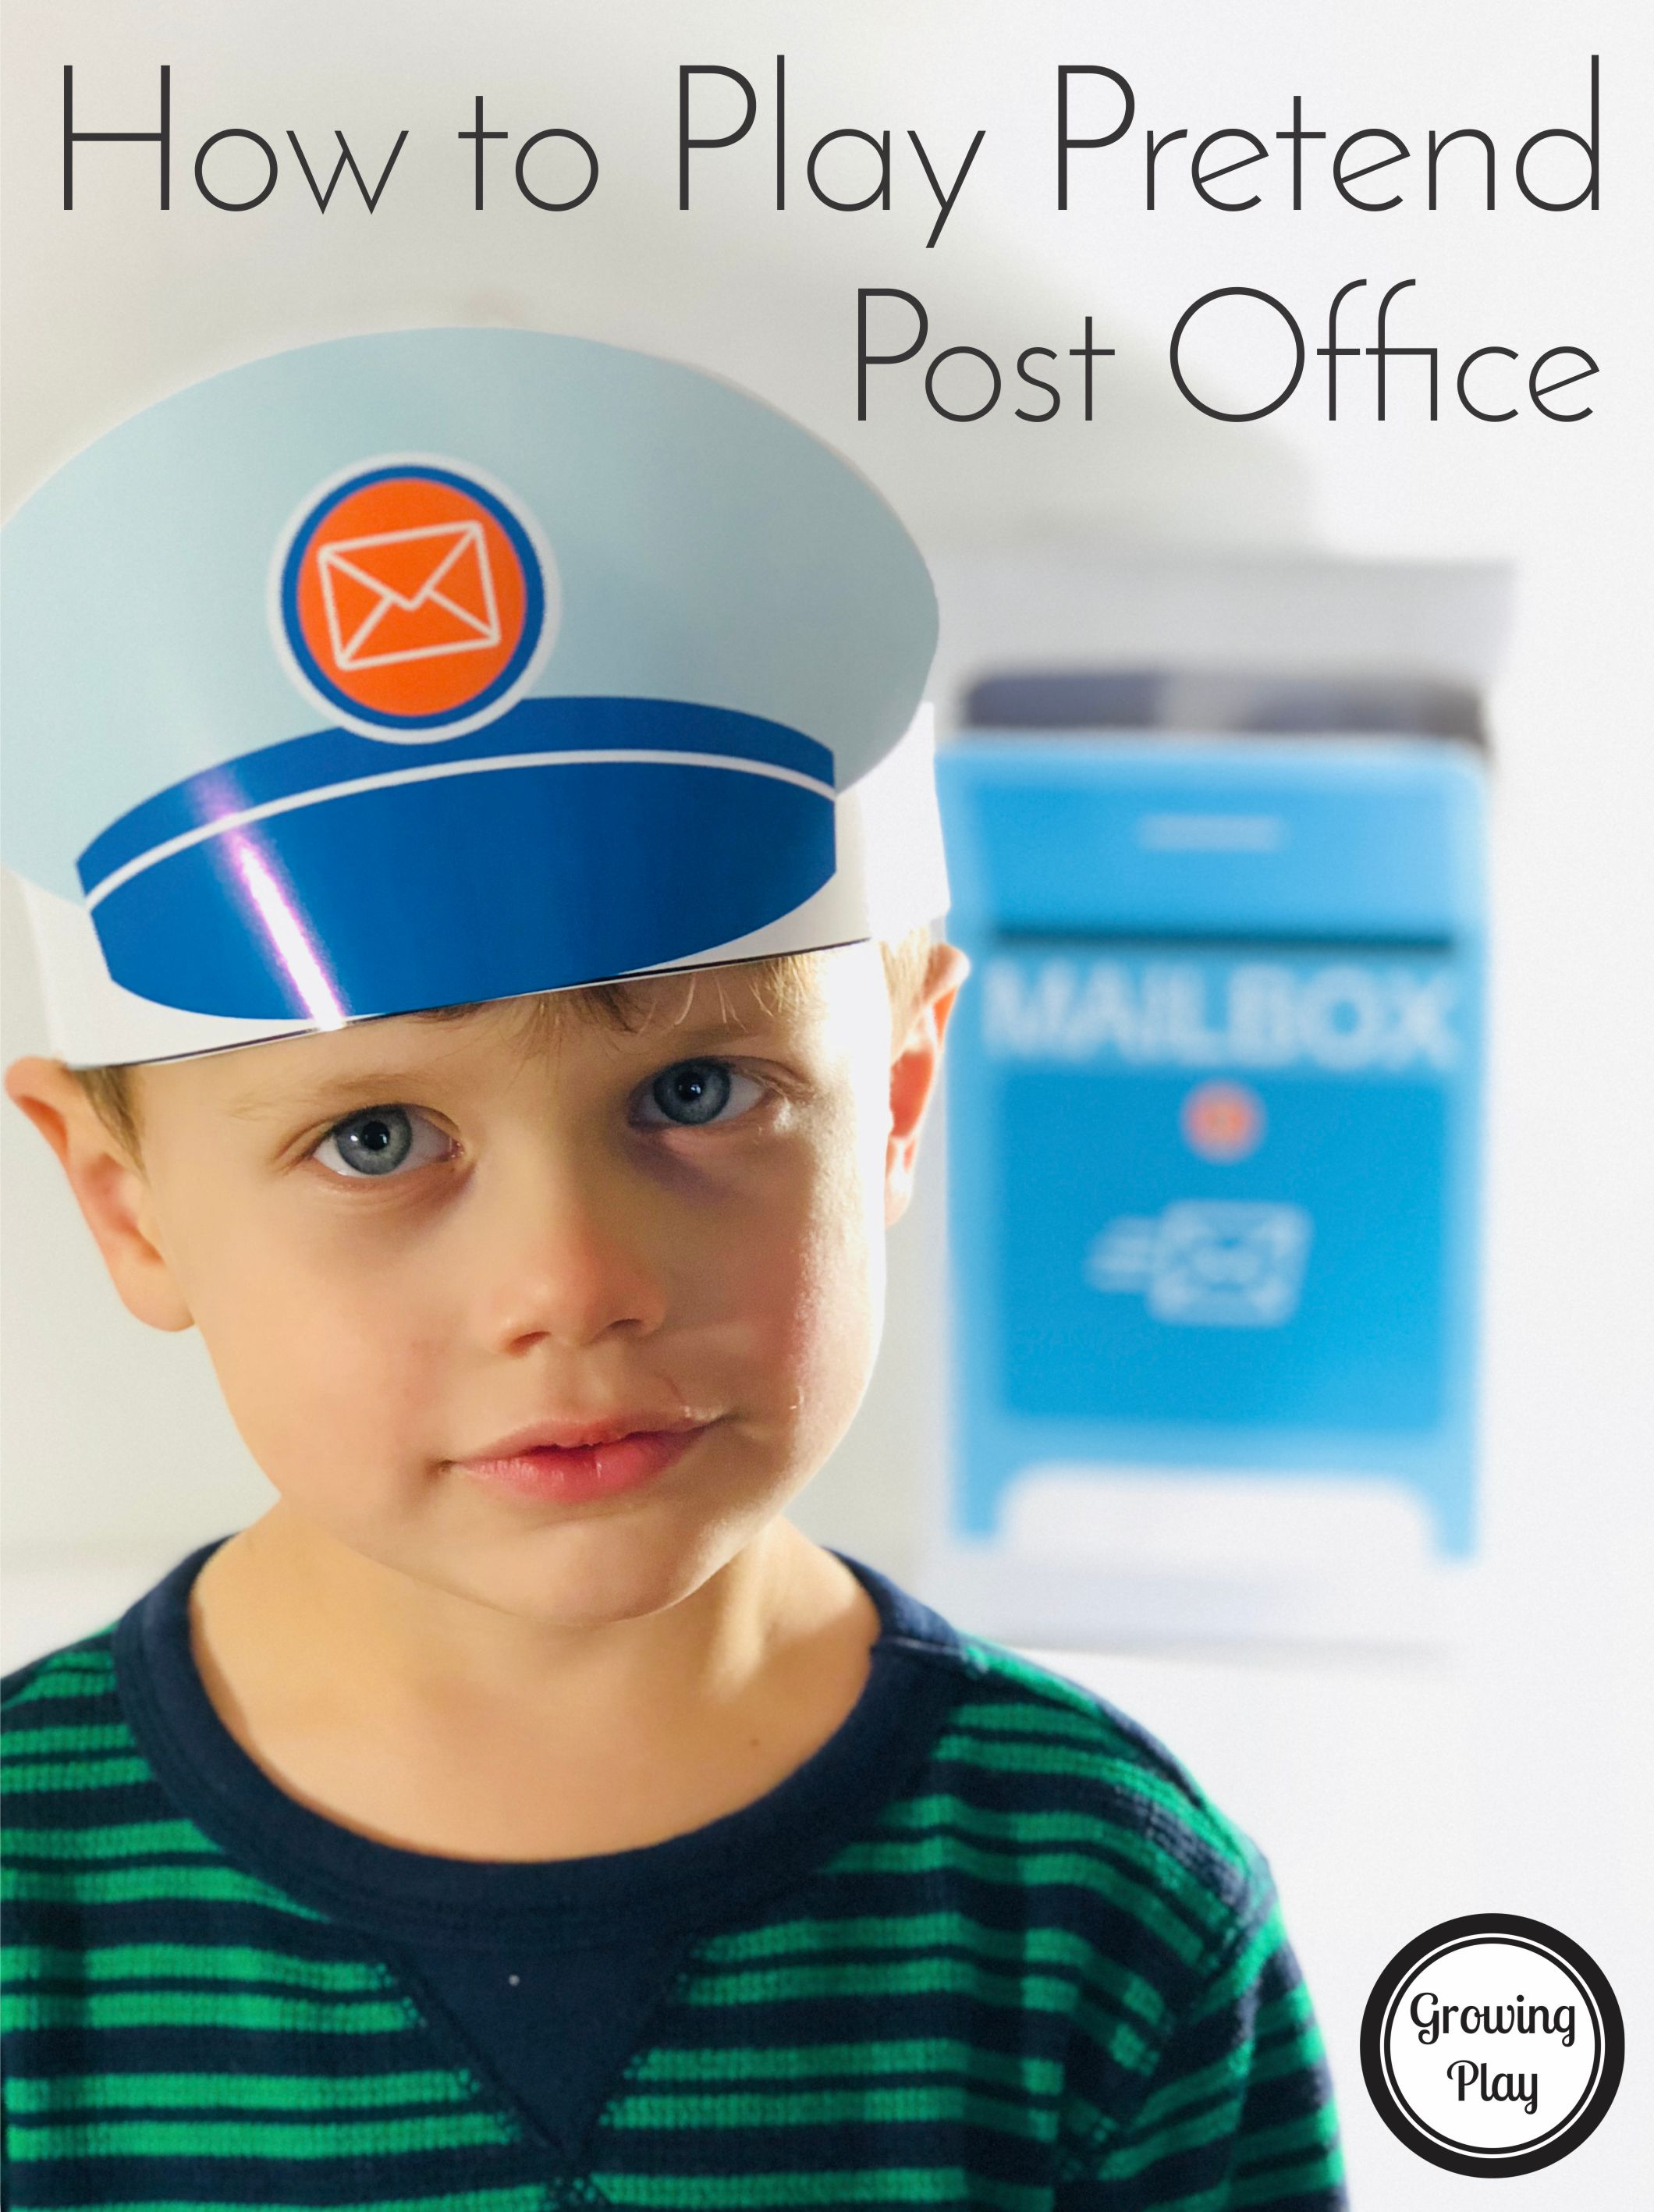 How To Play Pretend Post Office Growing Play